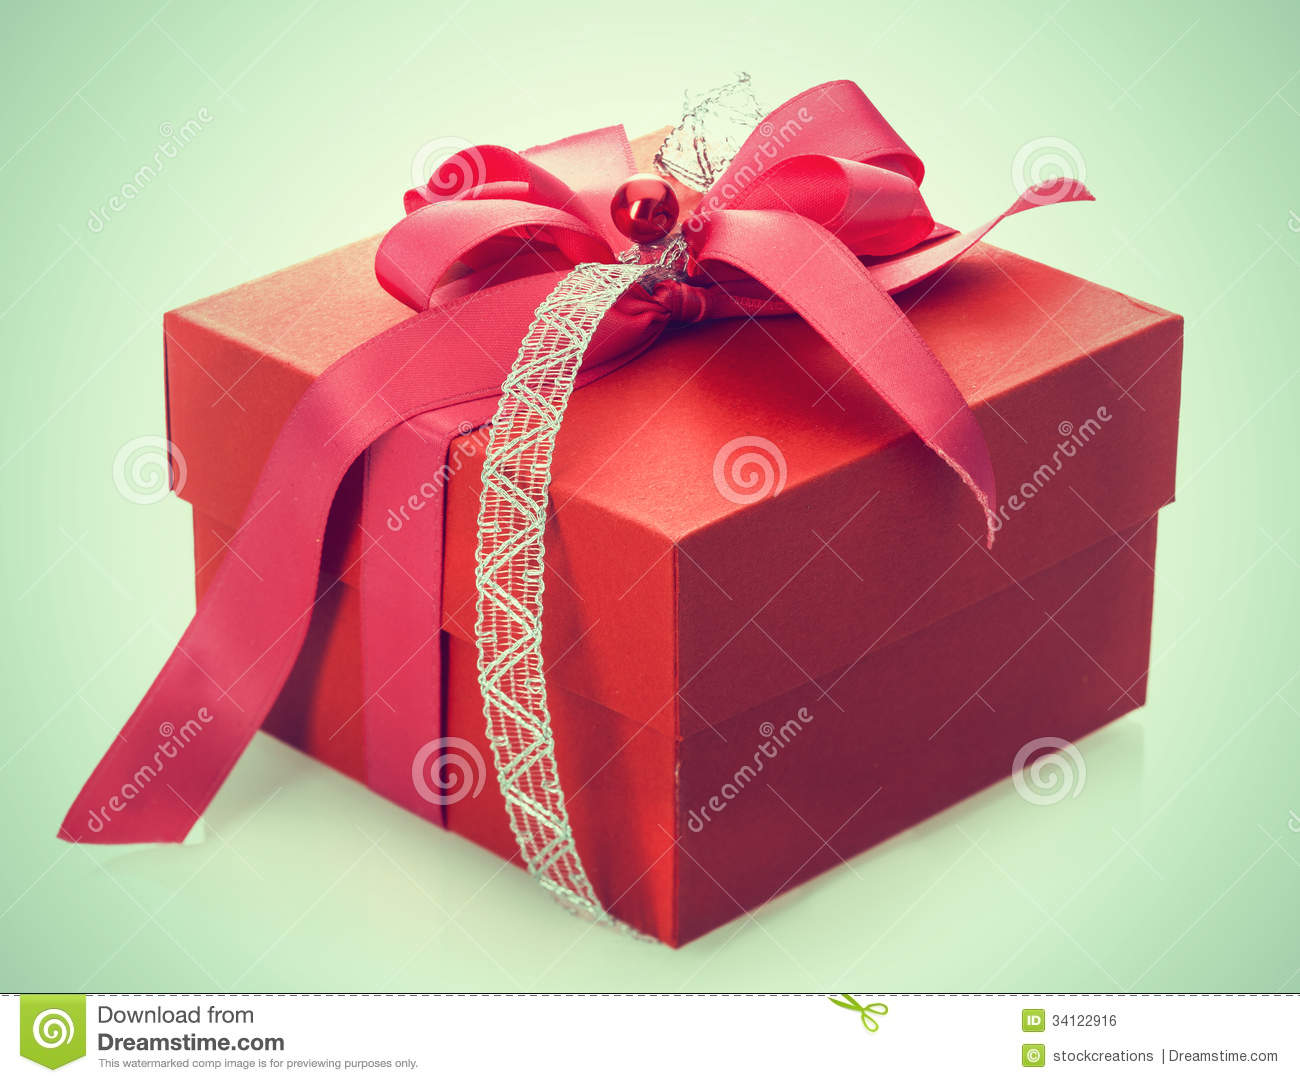 Decorative valentine boxes : Red gift box with decorative bow royalty free stock image